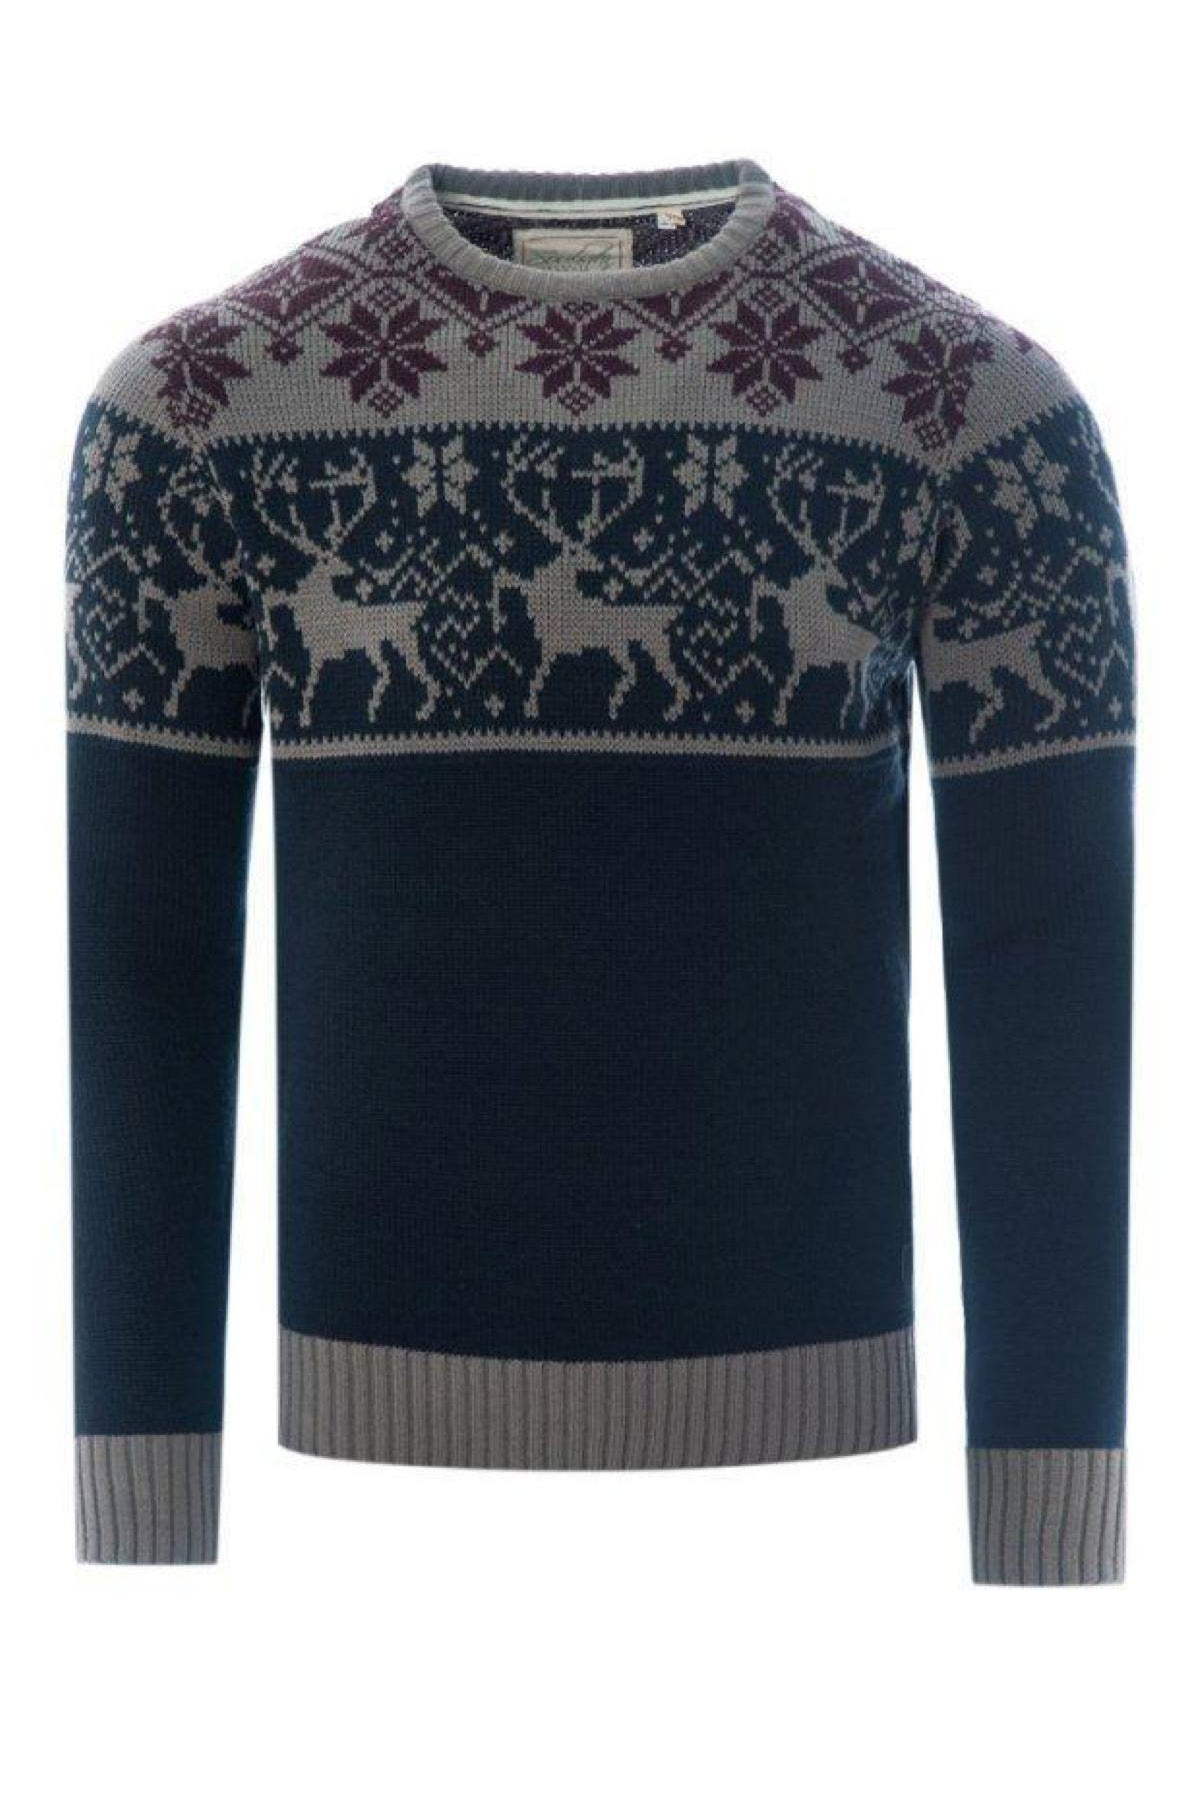 Stag Knit Navy